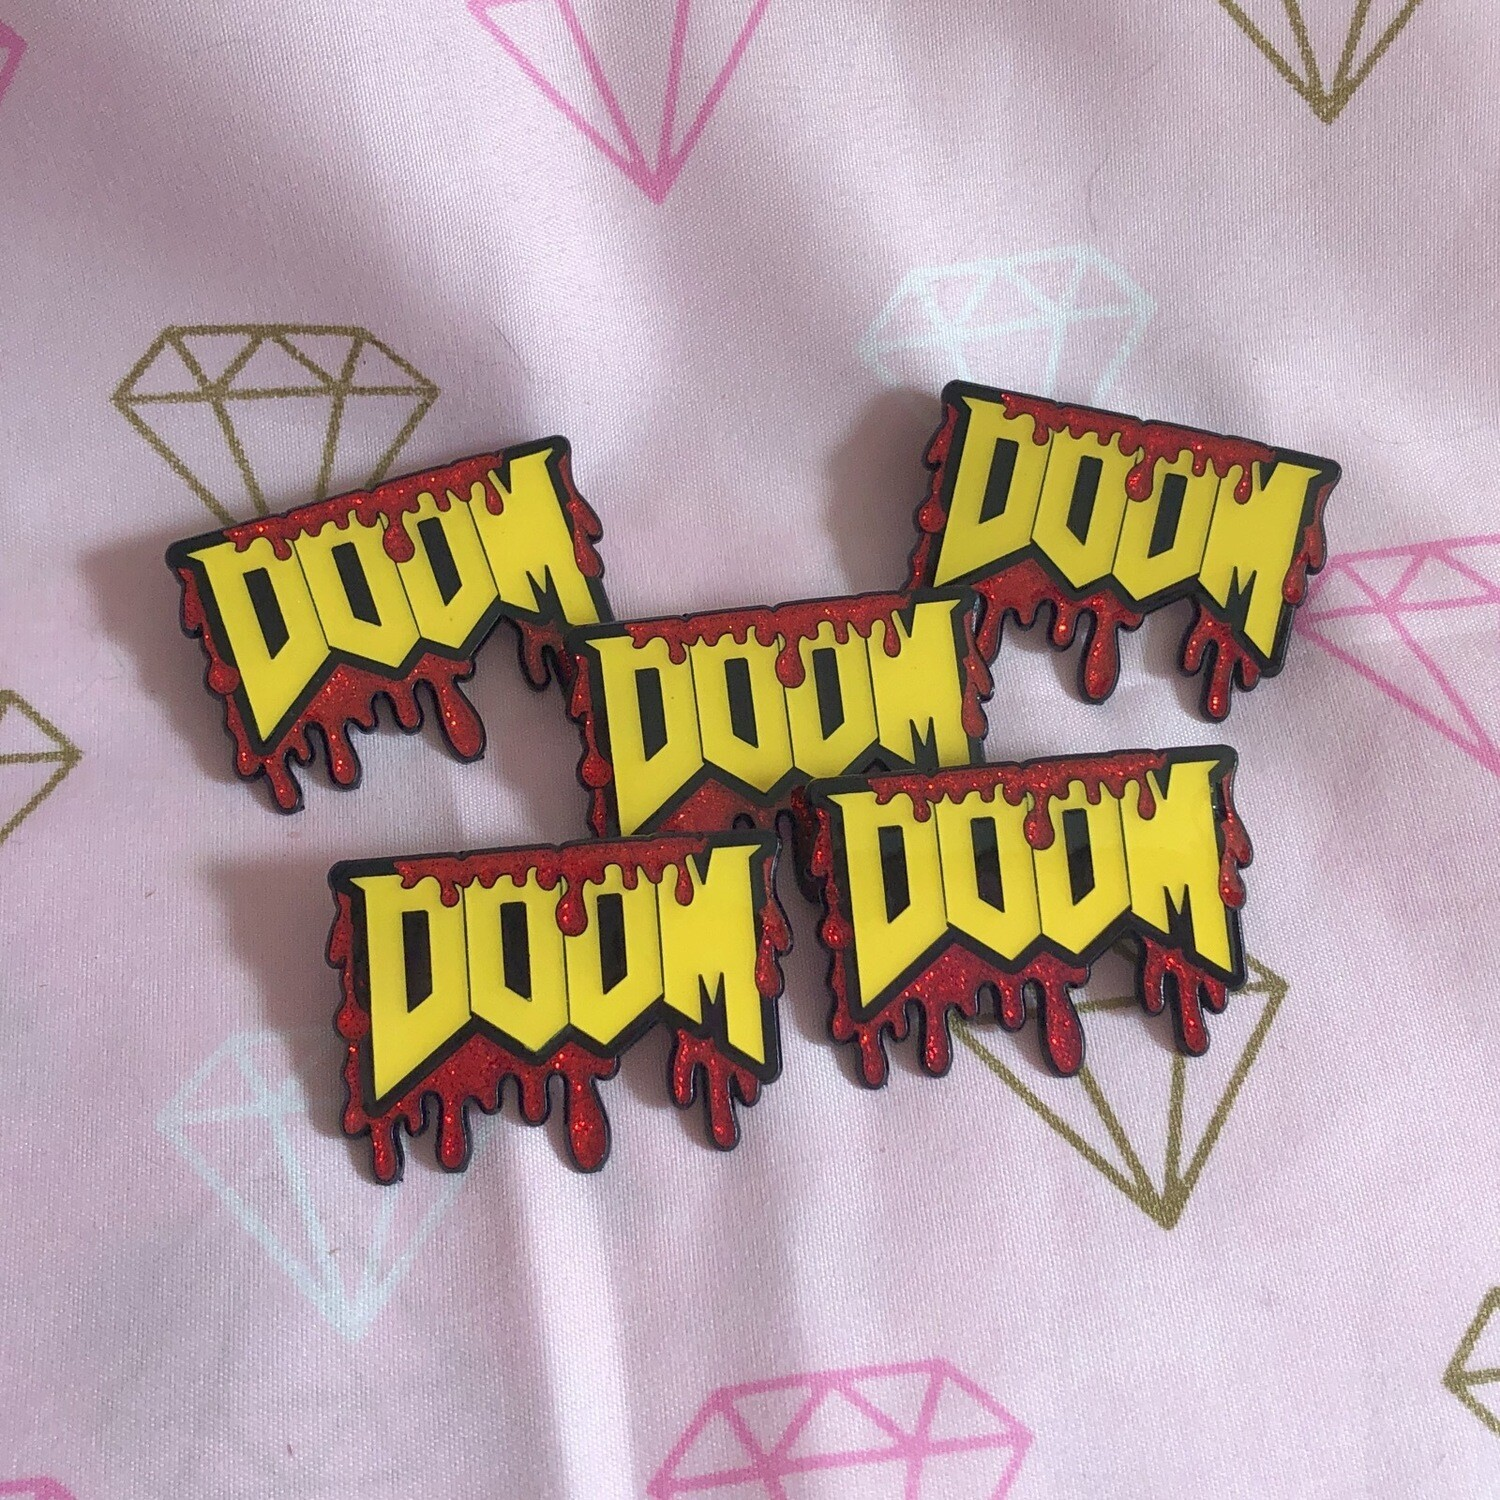 Glow in the Dark Doom Pin